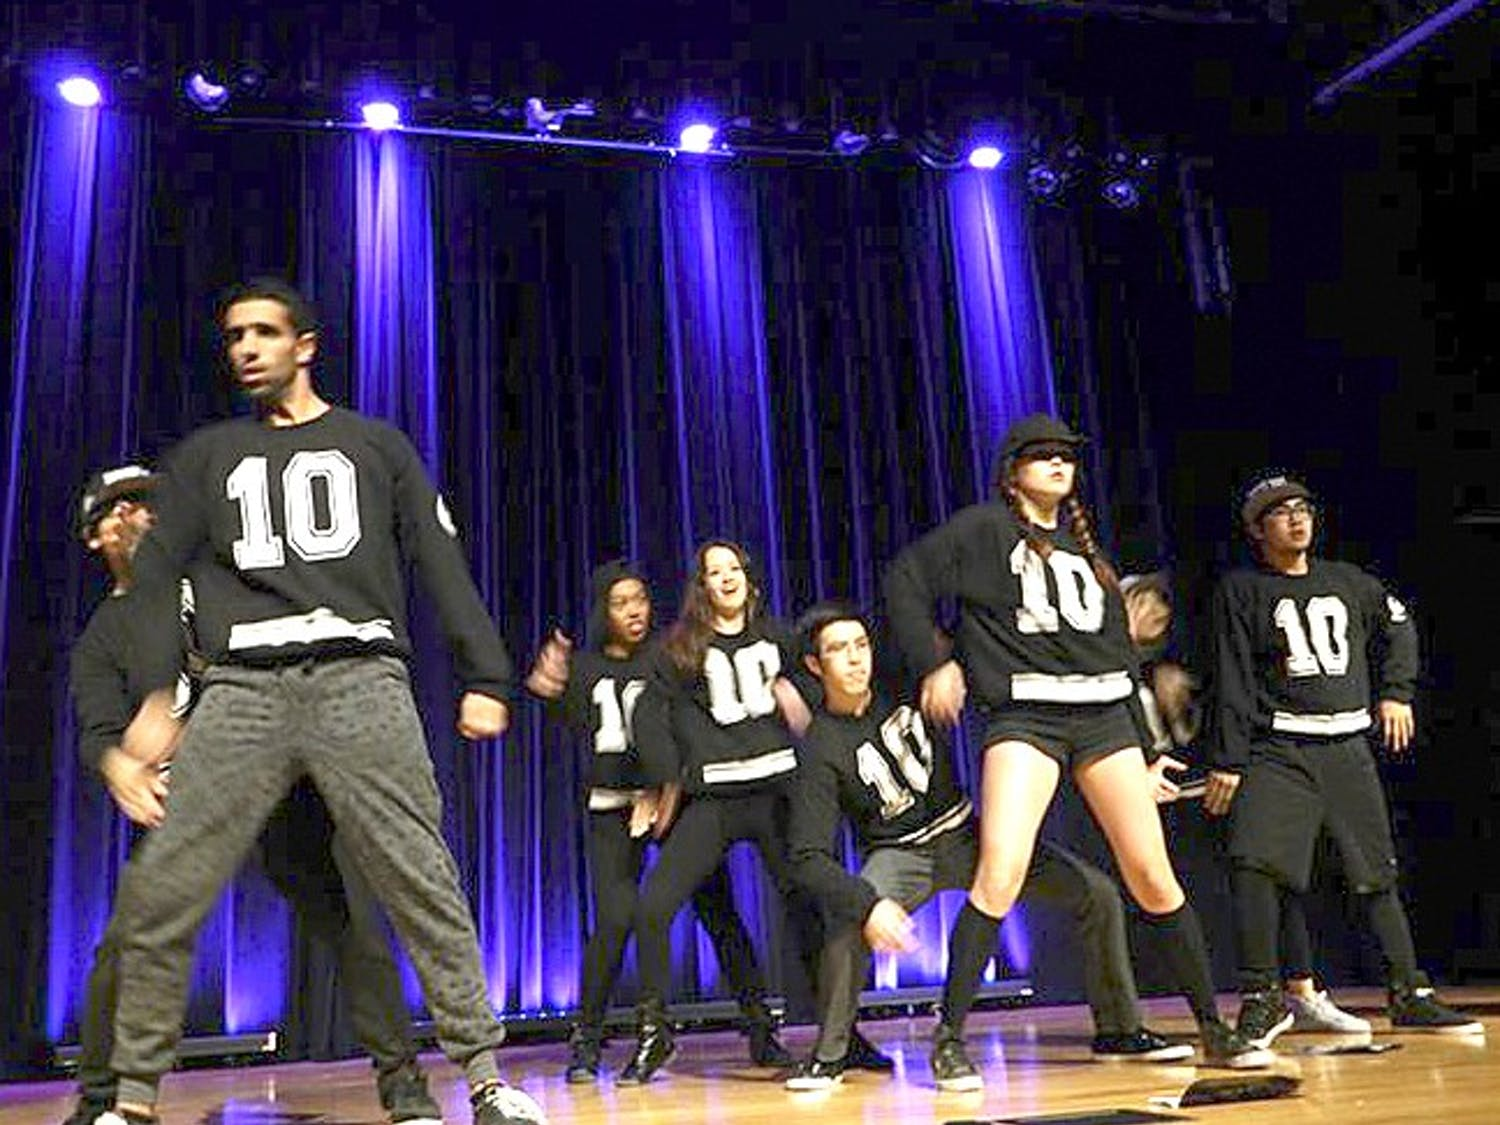 The UNC Moonlight Hip Hop Dance Crew frequently performs on Friday evenings in the Pit. Courtesy of Kaitlin Barker.